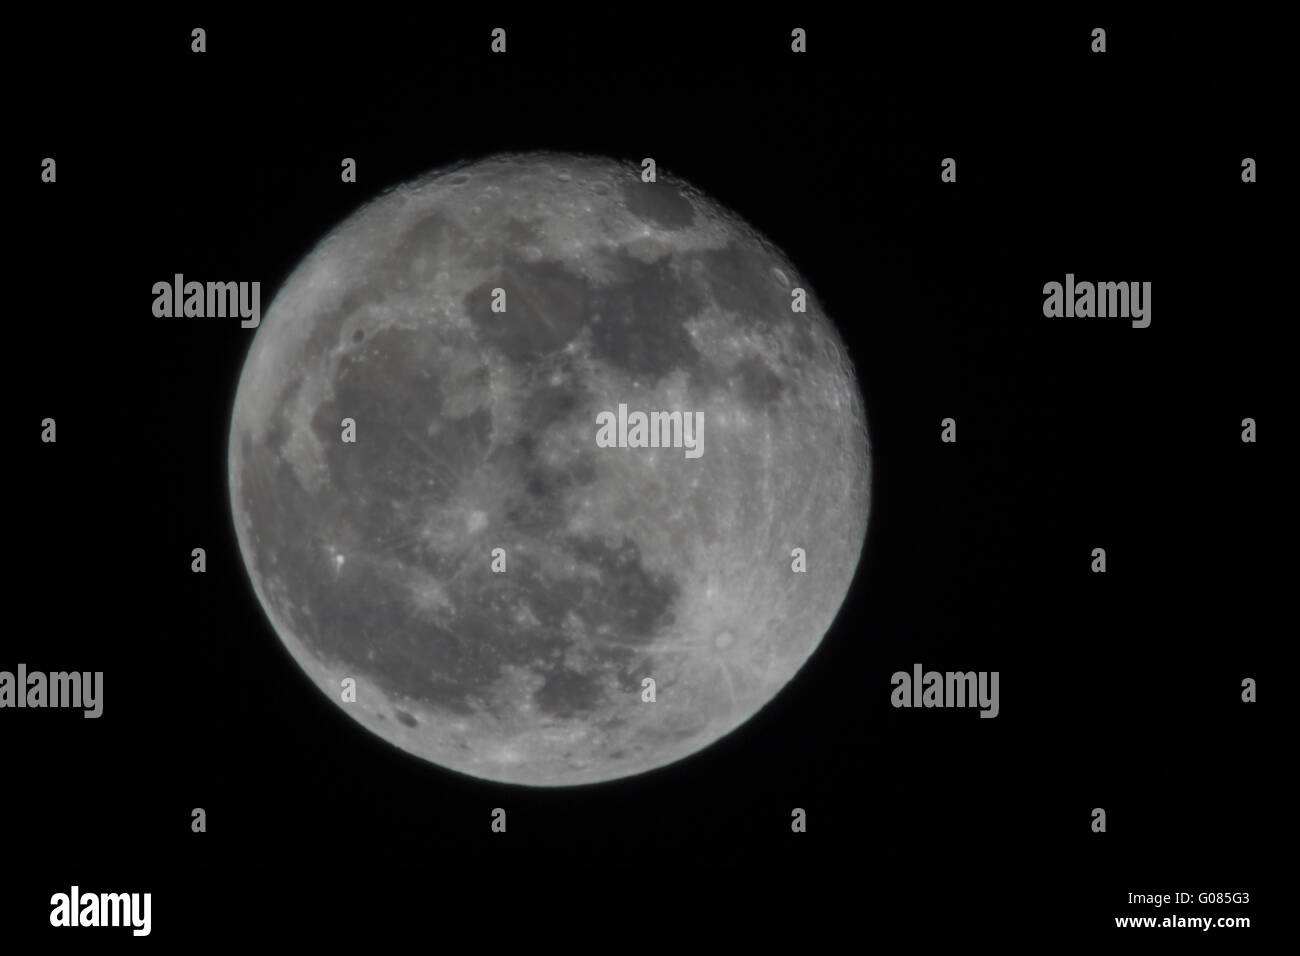 moon - Stock Image